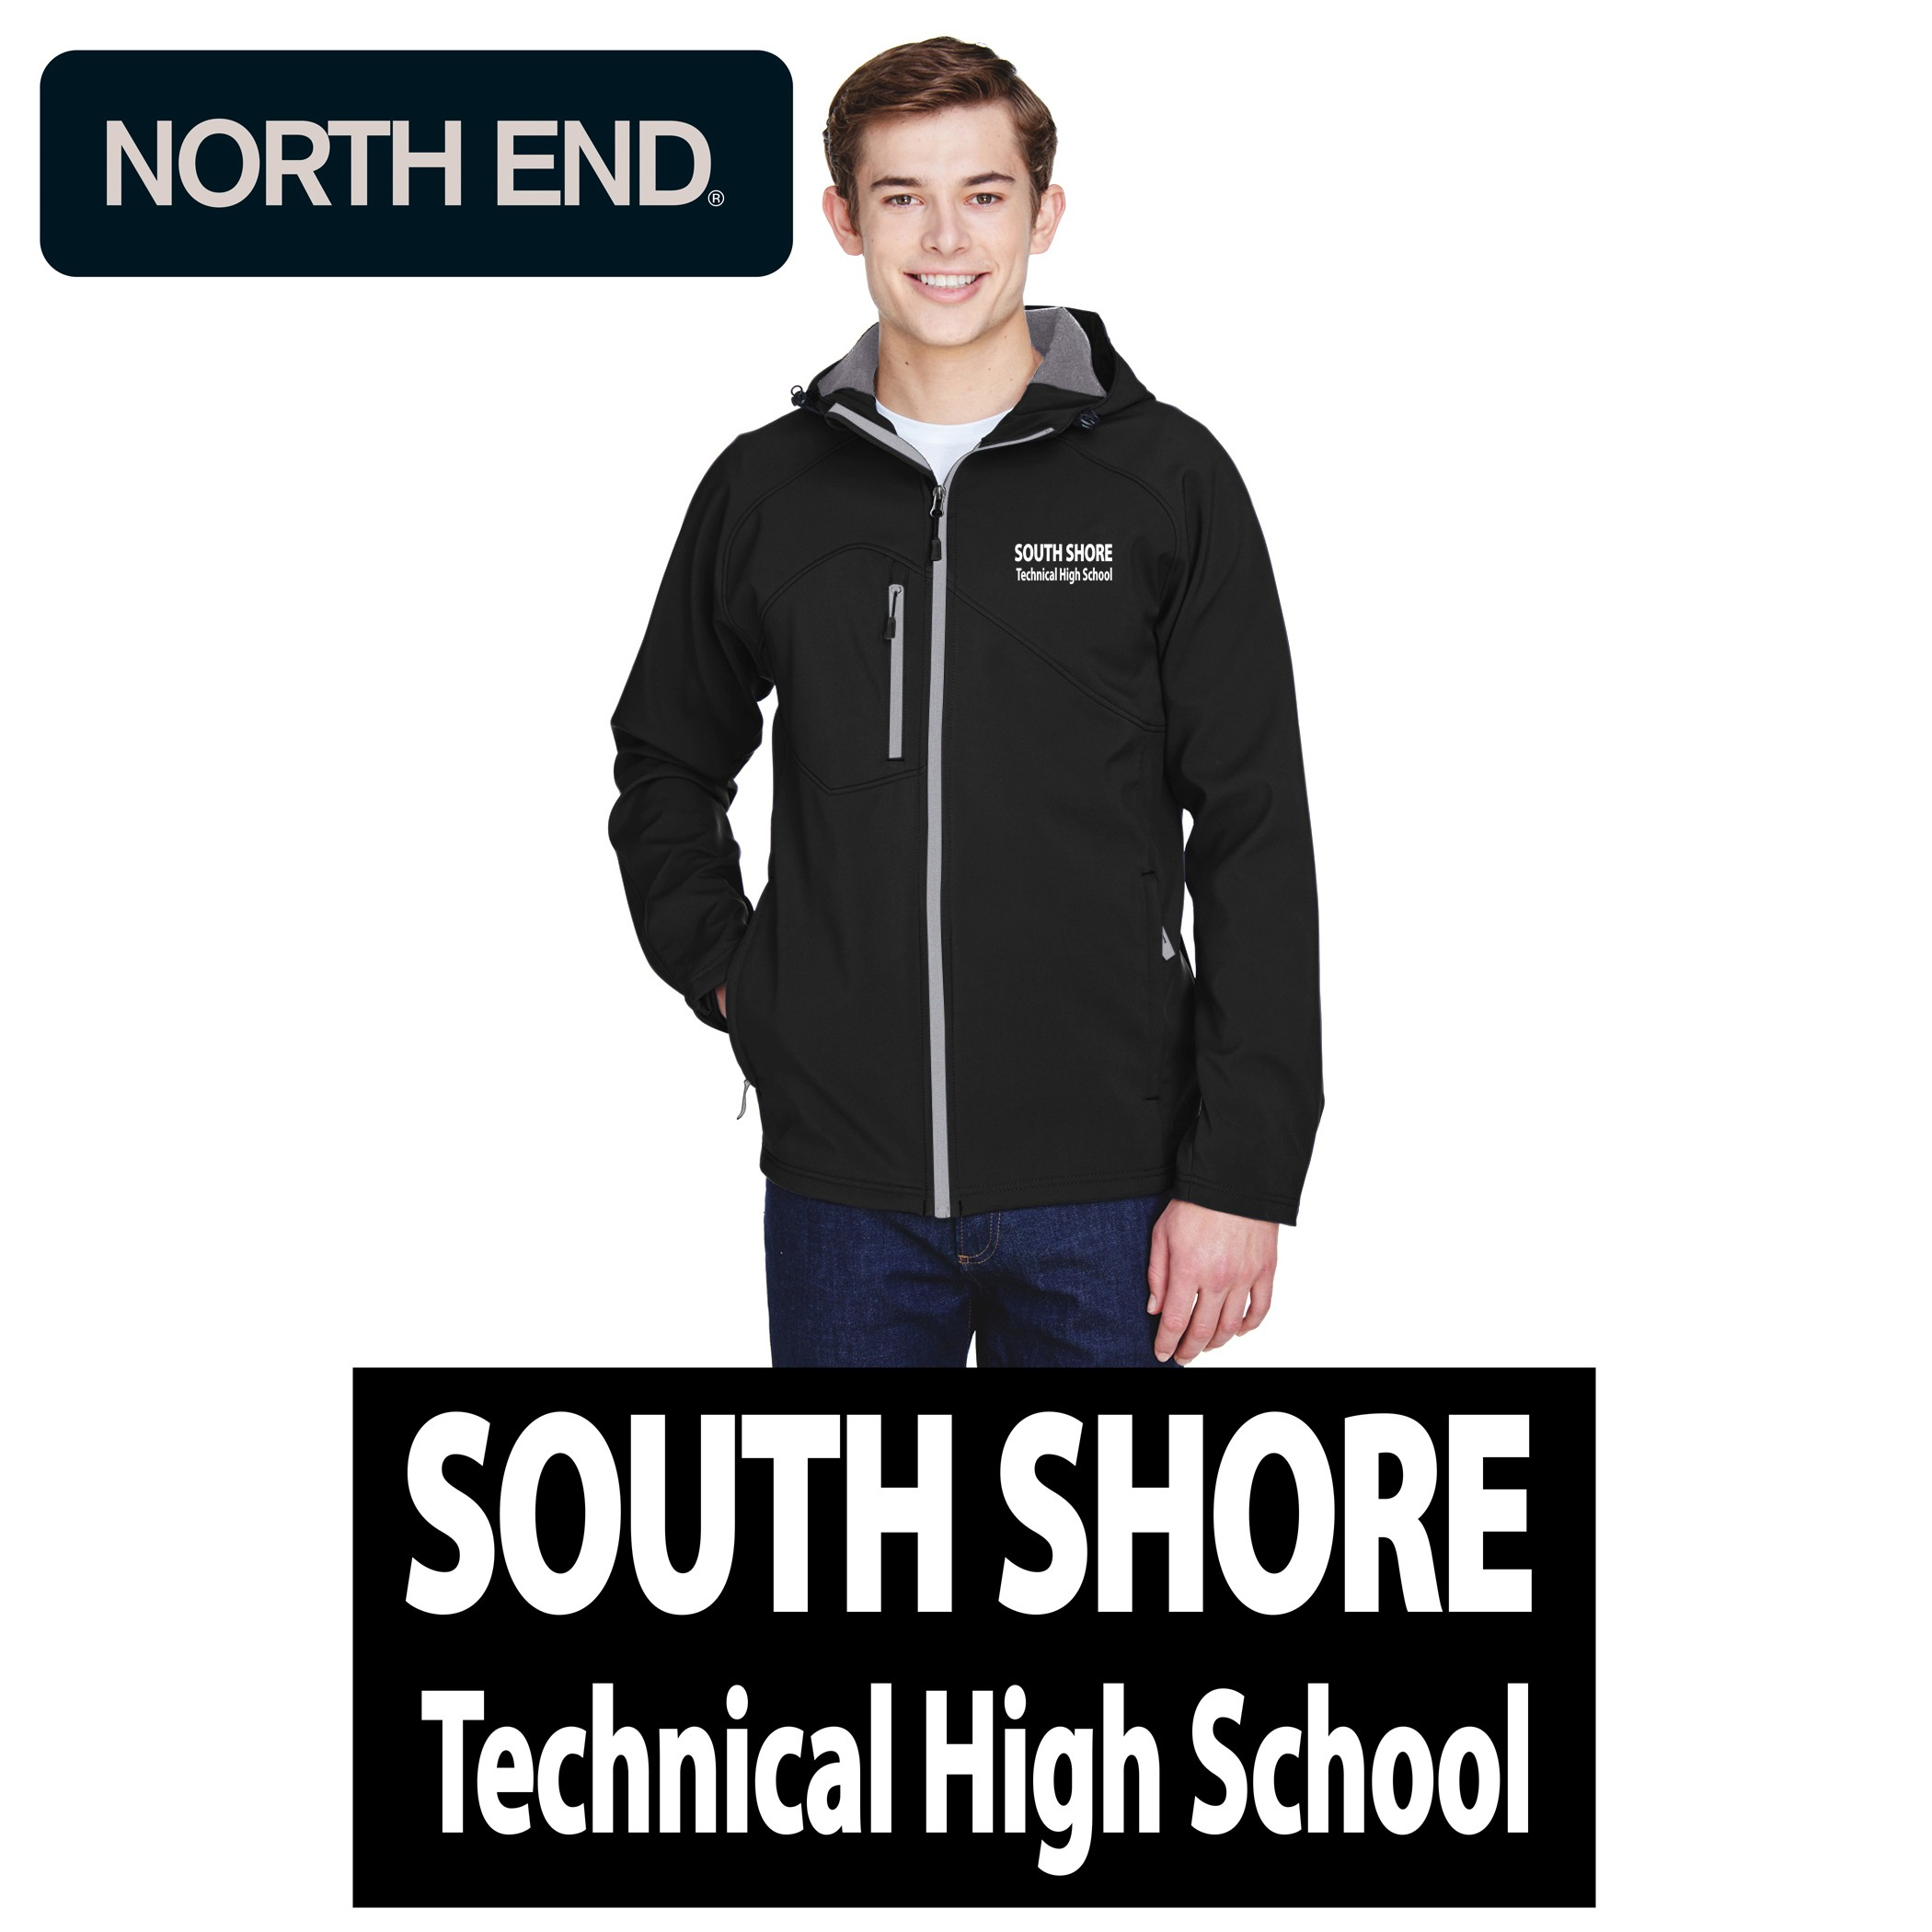 South Shore Technical High School Ash City - North End Men's Prospect Two-Layer Fleece Bonded Soft Shell Hooded Jacket